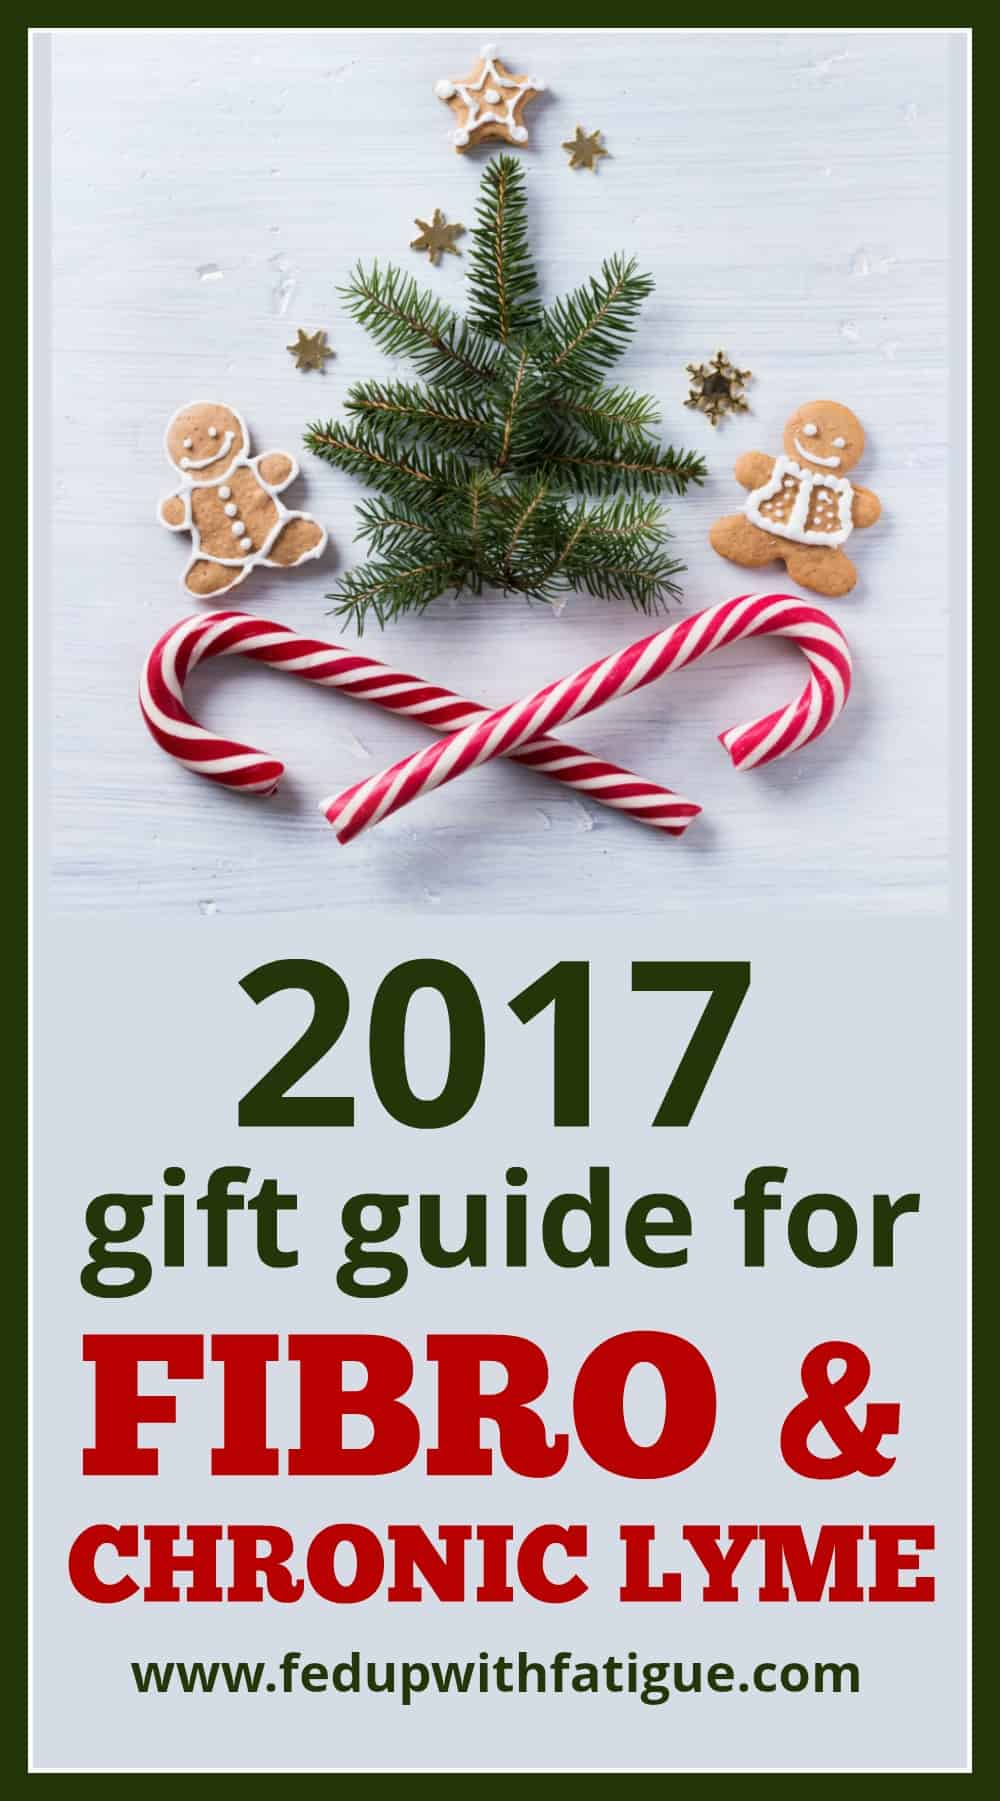 FedUpwithFatigue's 2017 gift guide for fibromyalgia and chronic Lyme   Fed Up with Fatigue